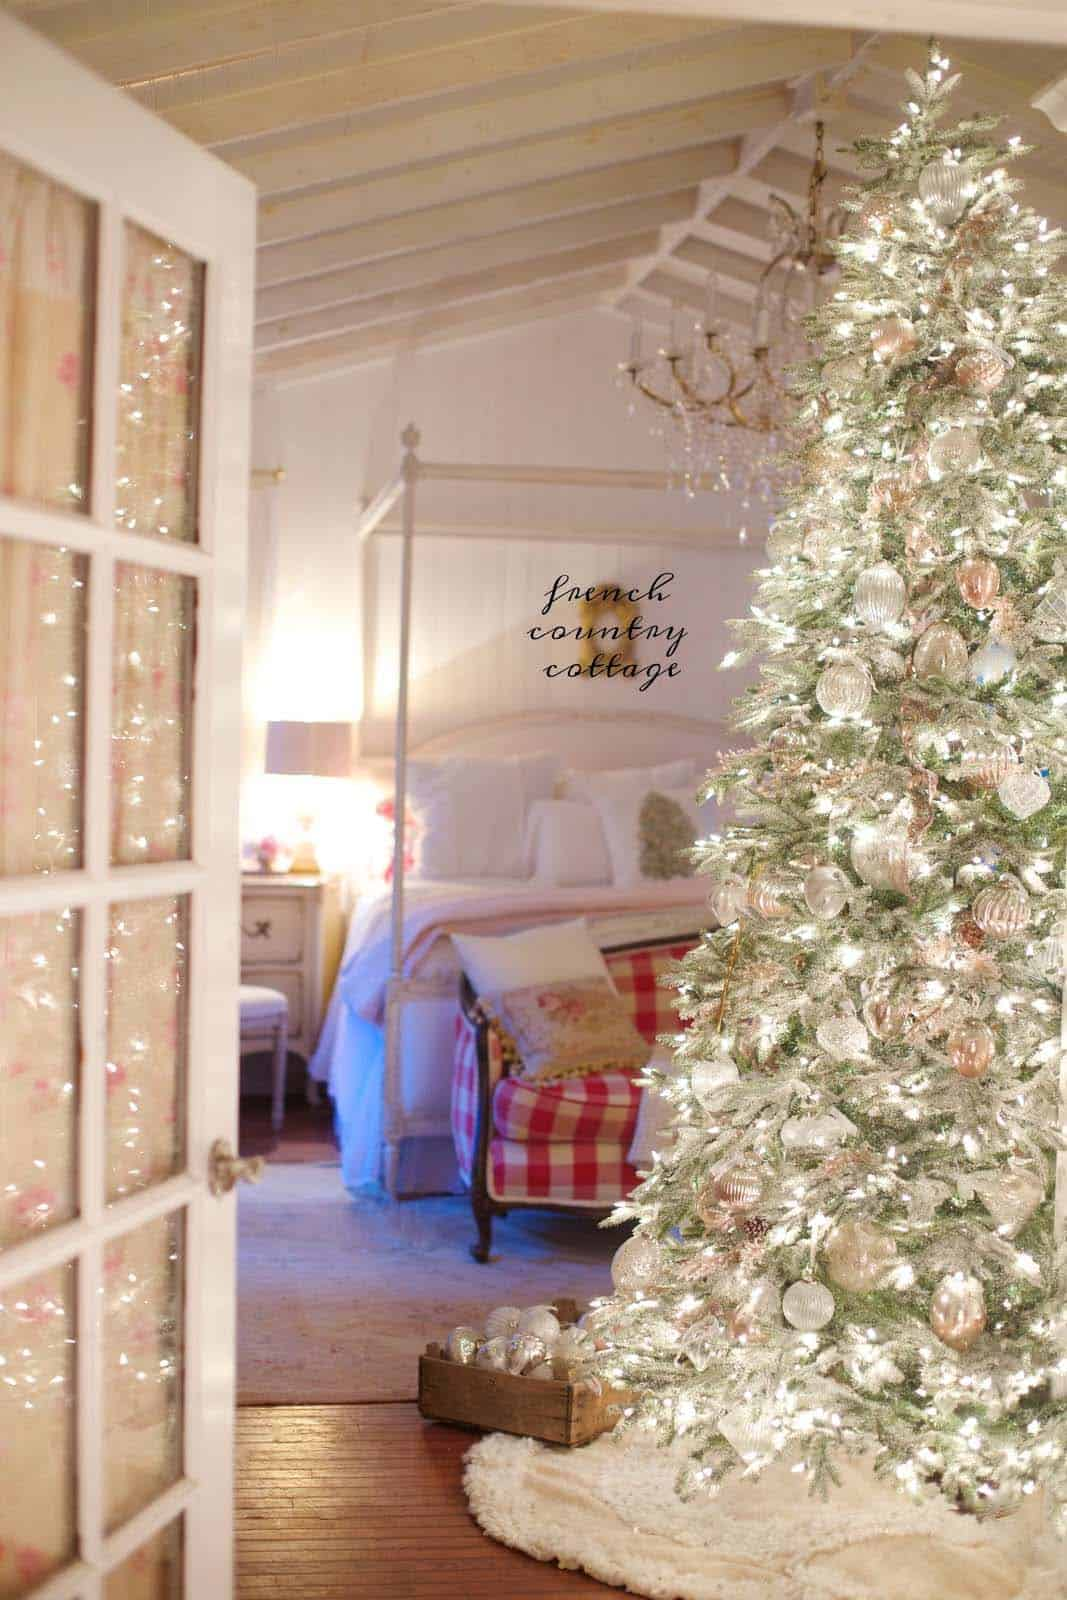 40 fabulous rustic country christmas decorating ideas - Rustic country bedroom decorating ideas ...